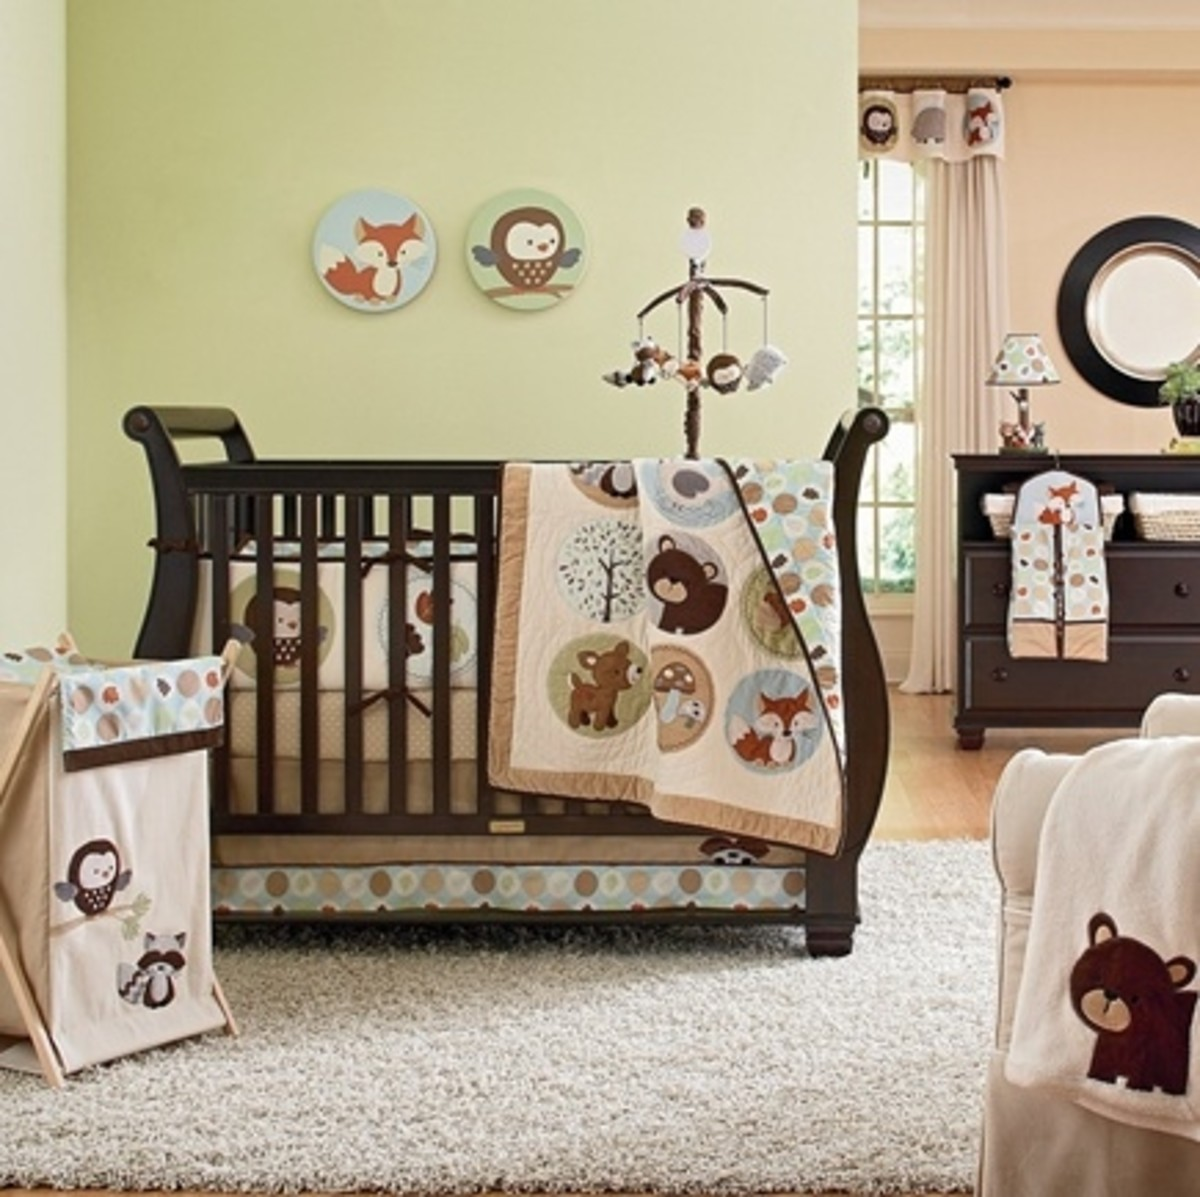 Carters Forest Friends room